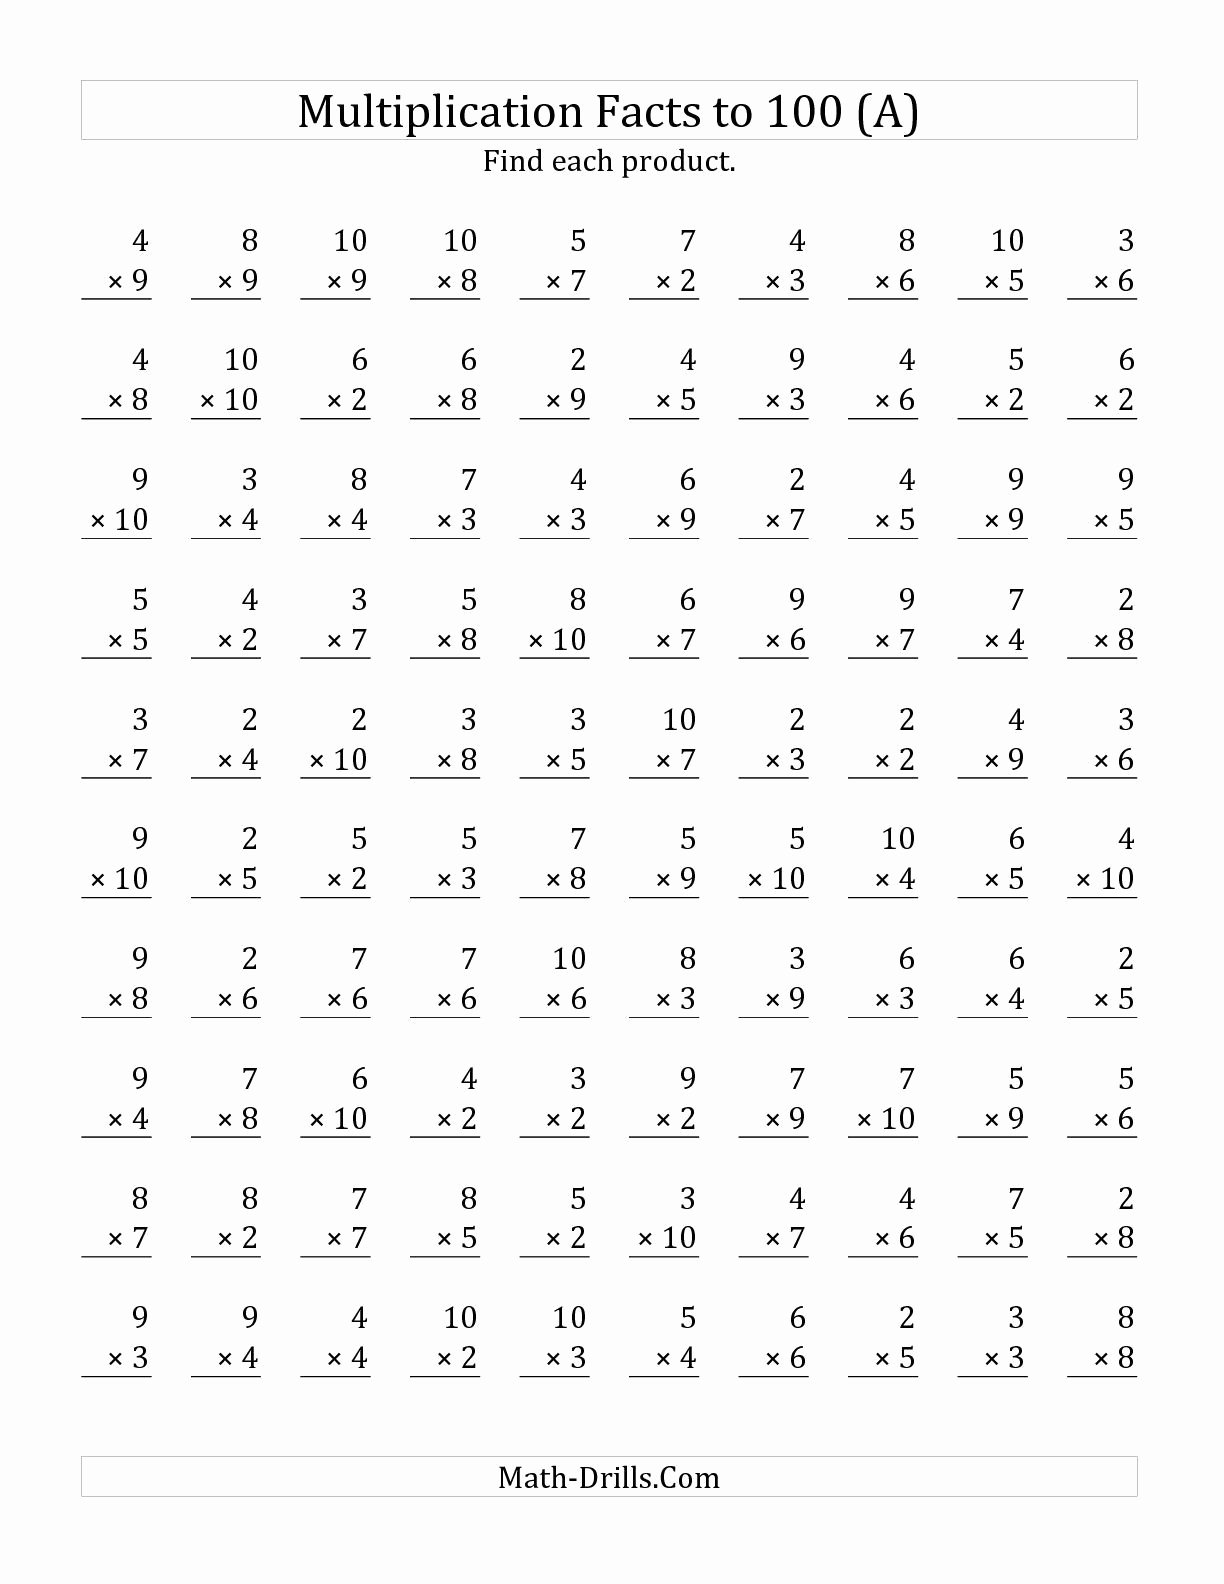 Printable Math Multiplication Worksheets top the Multiplication Facts to 100 No Zeros or Es All Math